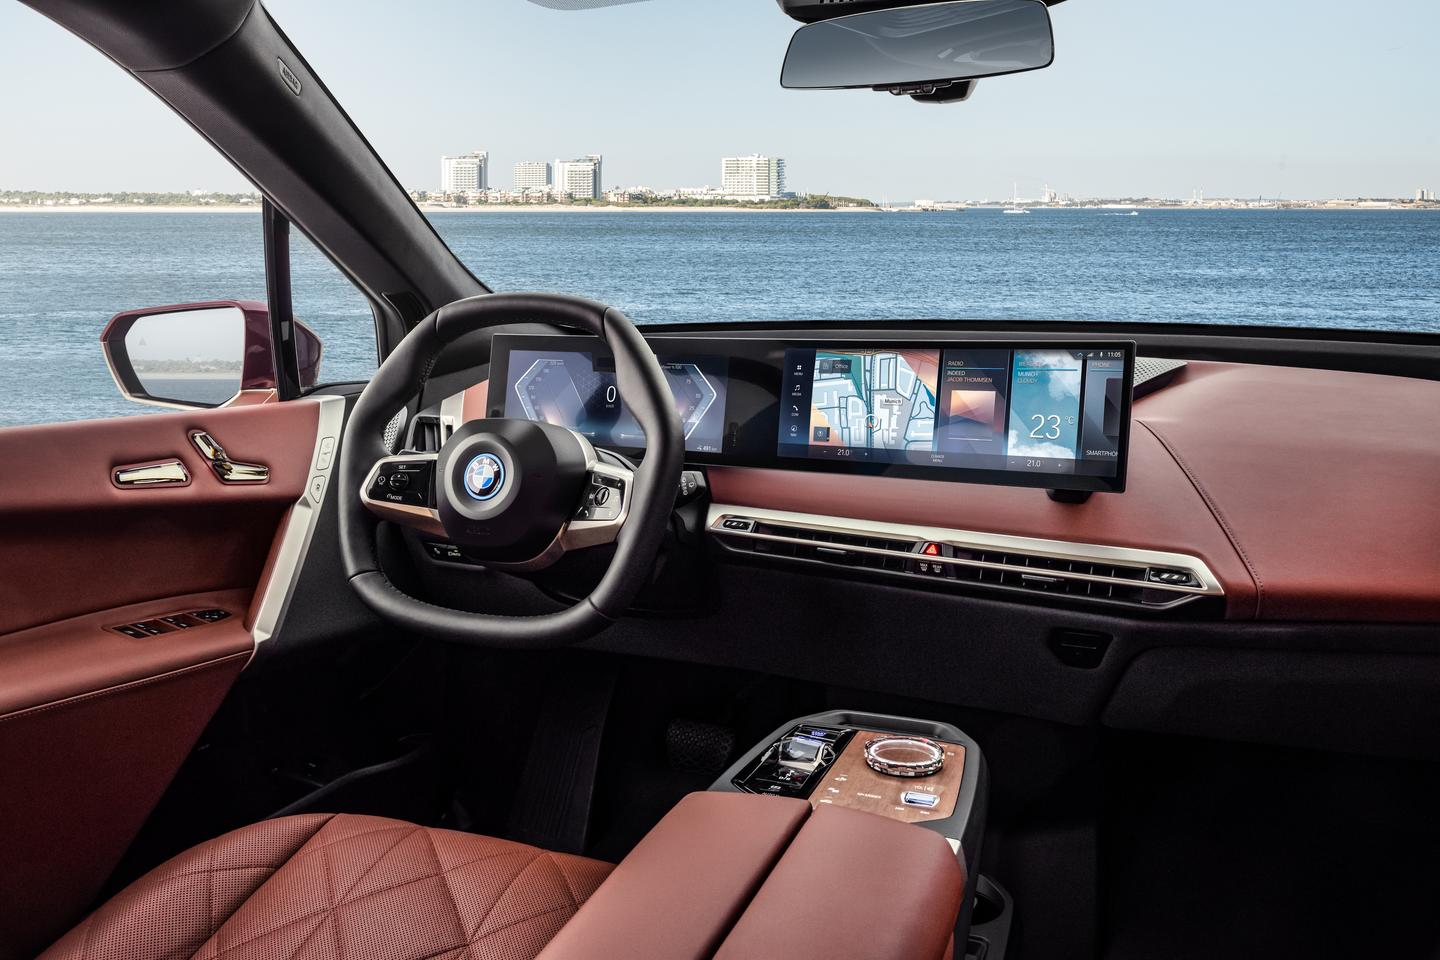 Instead of two separate screens, as on the iNext concept, BMW combines the instrument panel and infotainment display into a single curved display